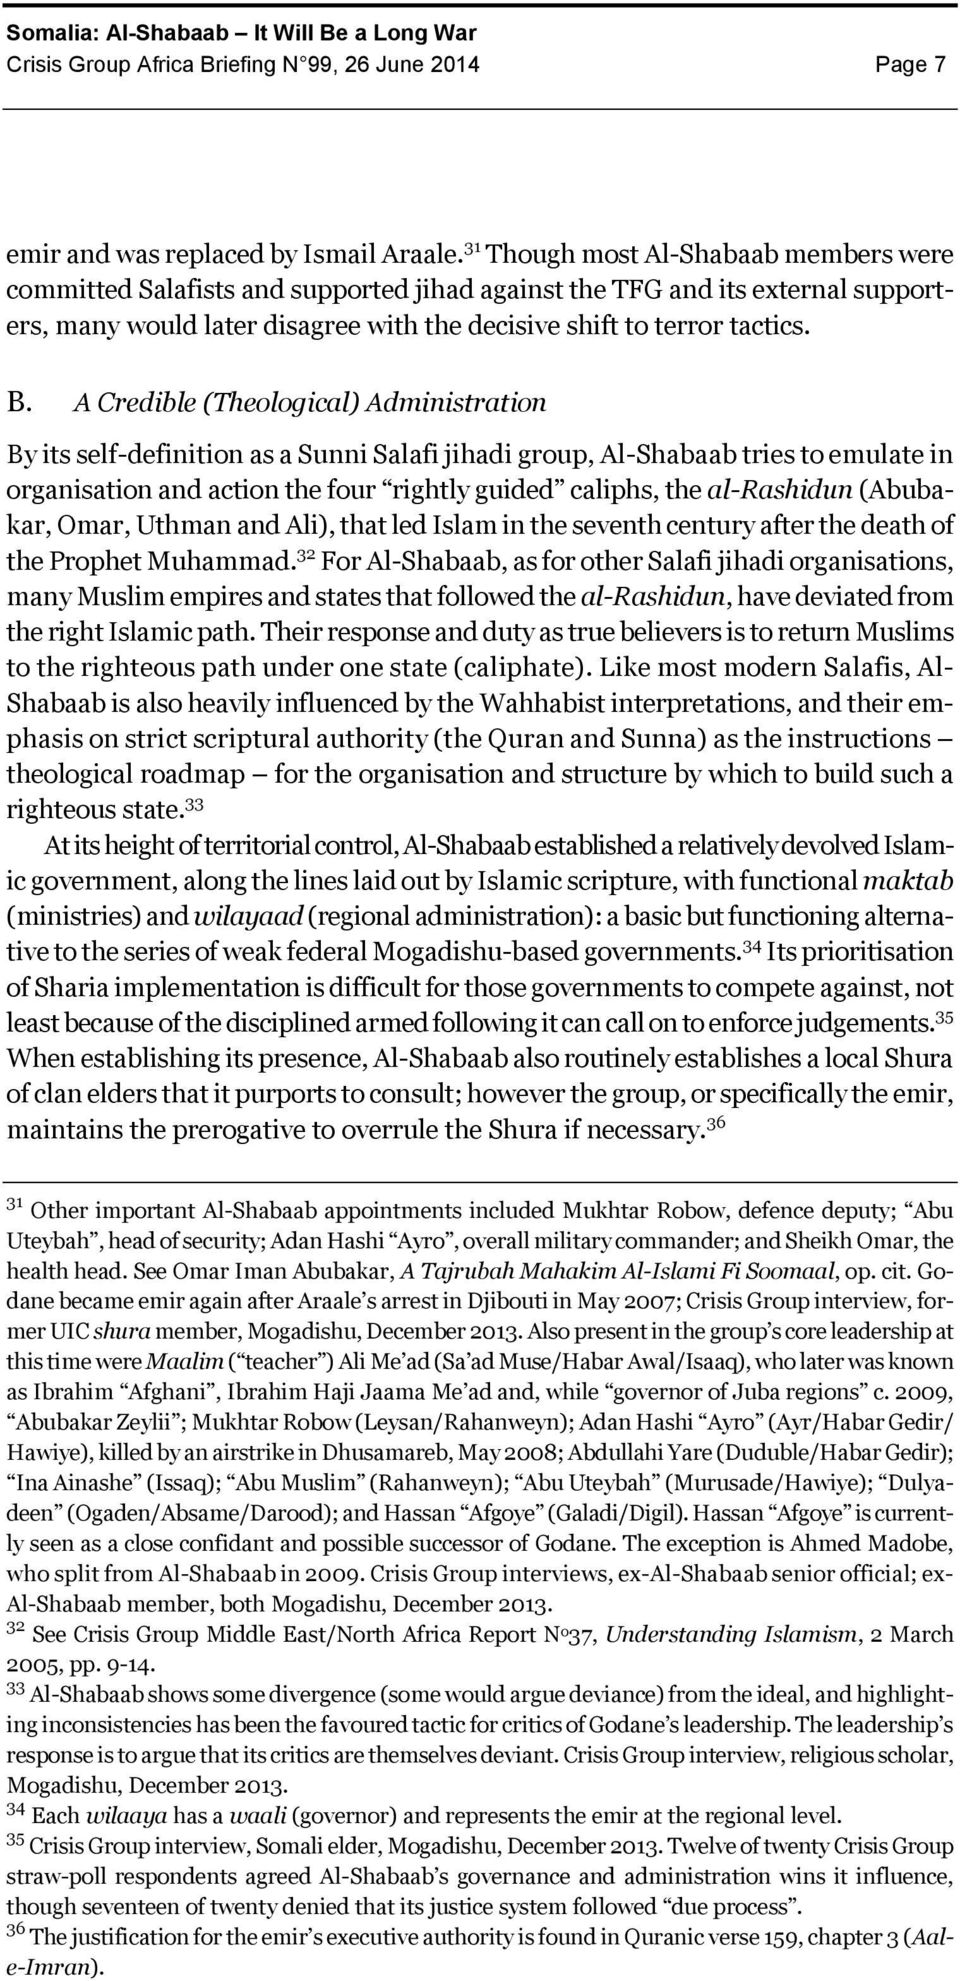 A Credible (Theological) Administration By its self-definition as a Sunni Salafi jihadi group, Al-Shabaab tries to emulate in organisation and action the four rightly guided caliphs, the al-rashidun